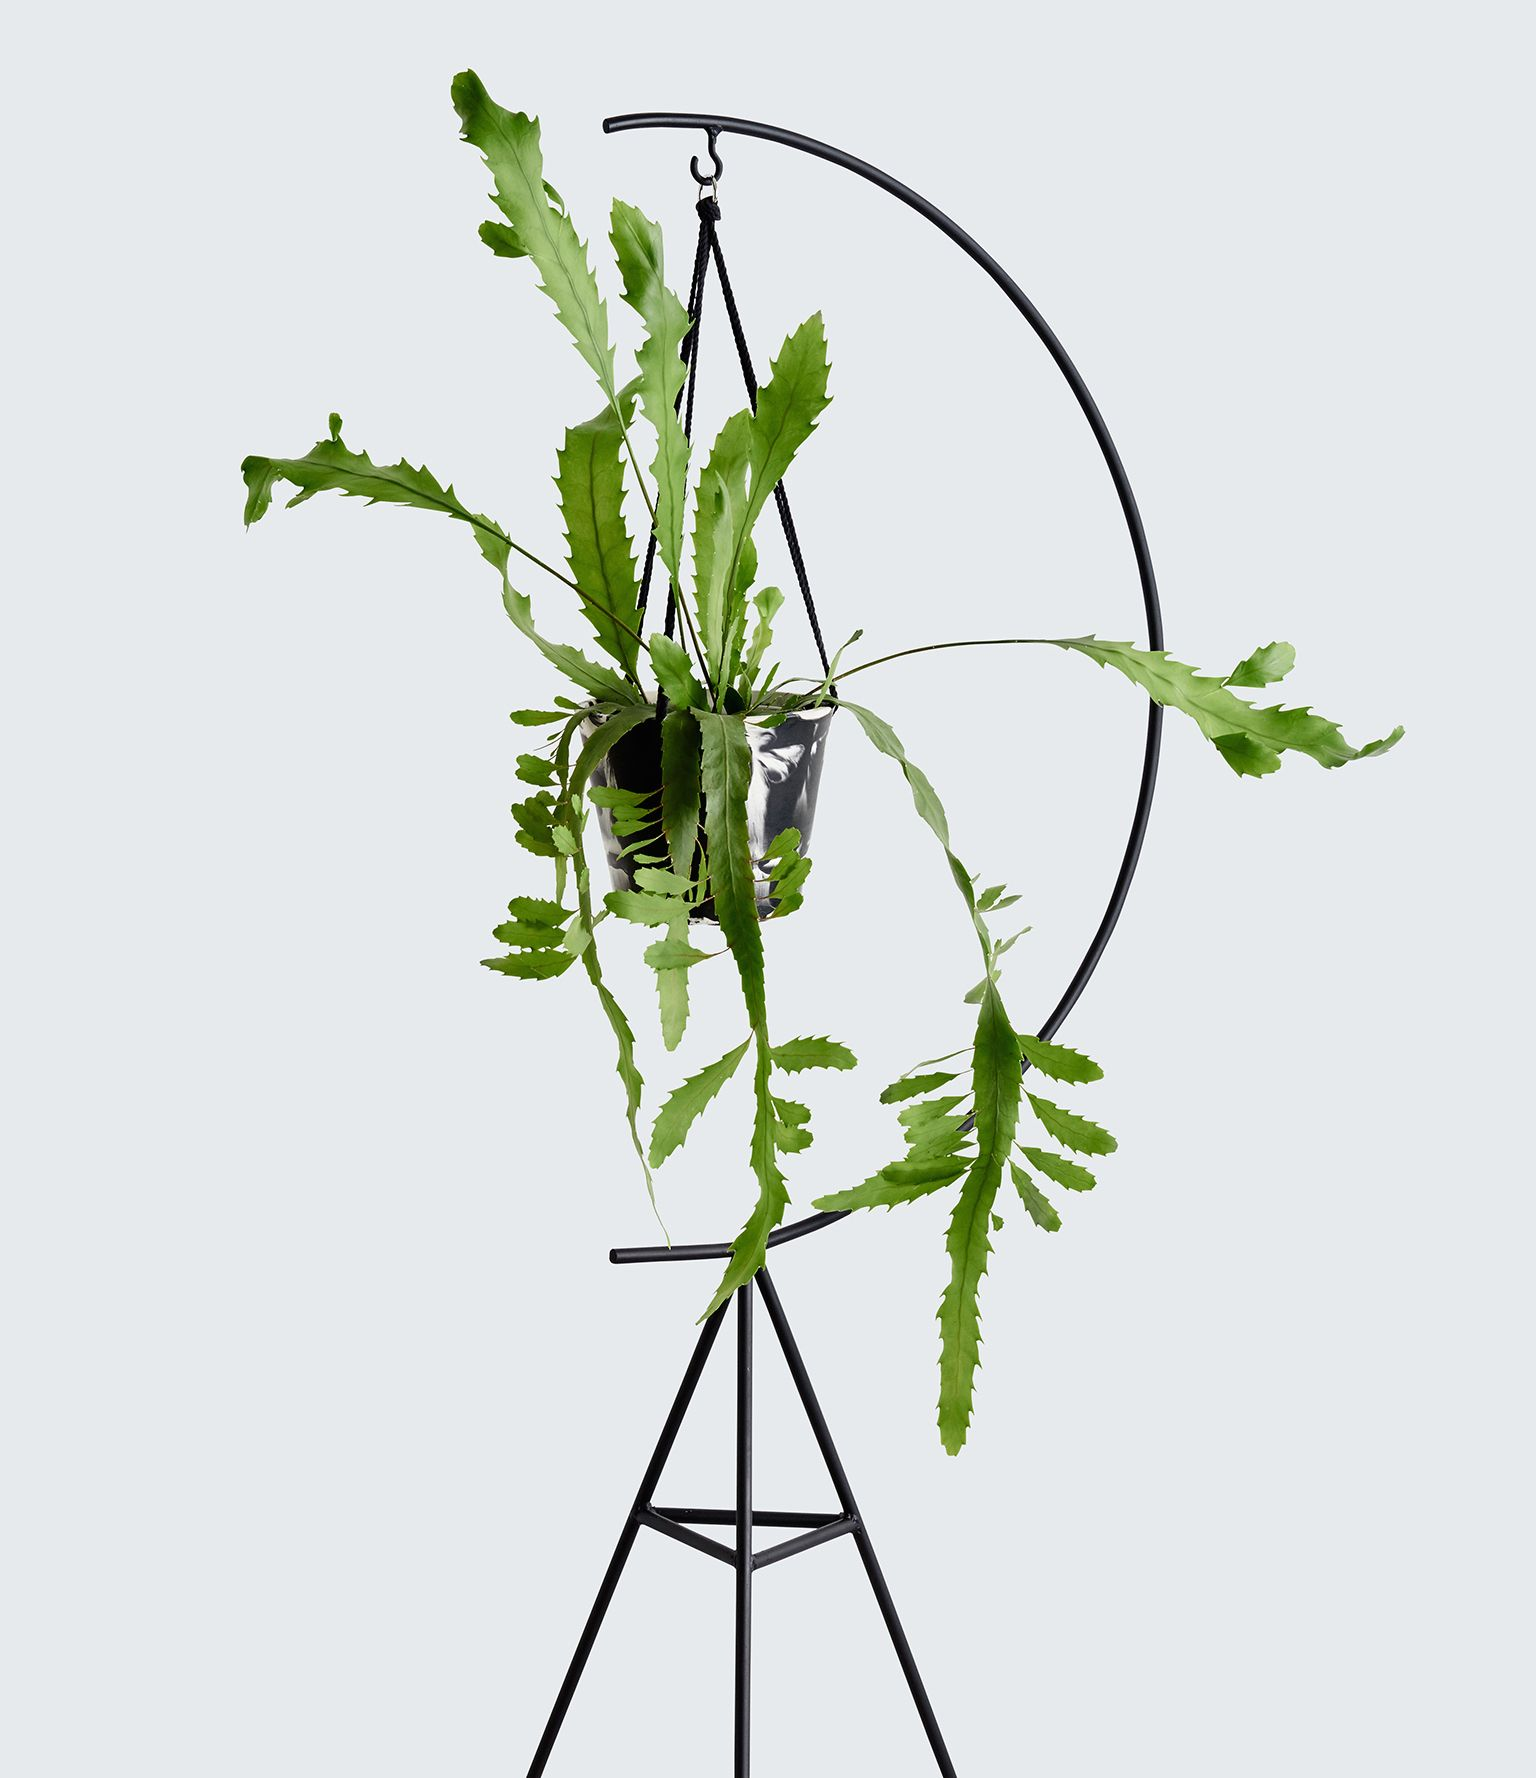 Capra Designs Crescent Plant Stand Is Made From Powder Coated